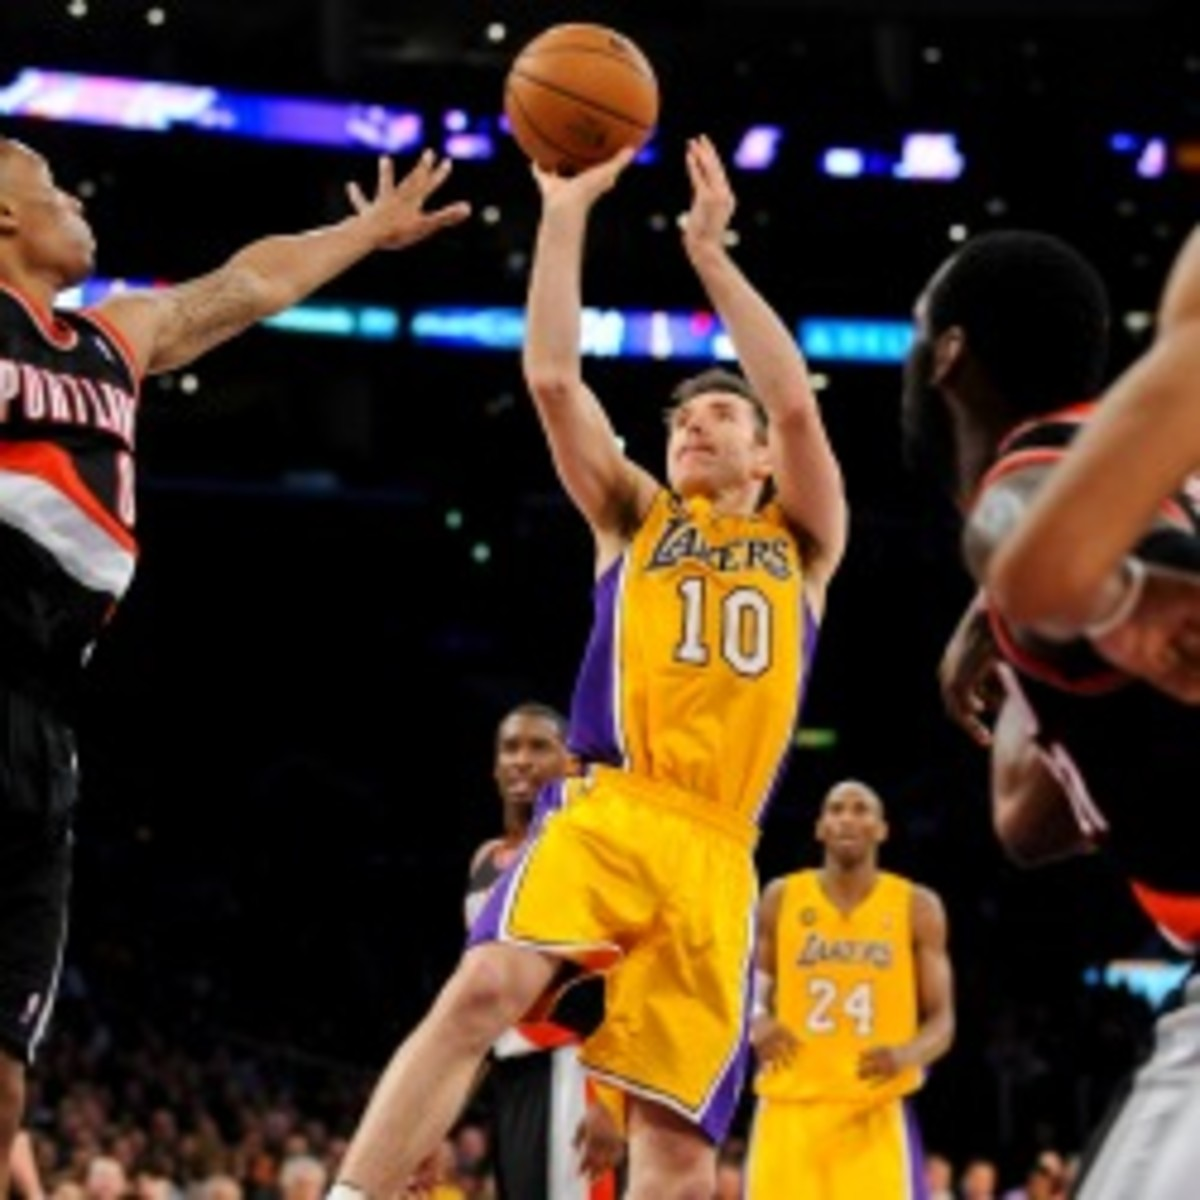 Steve Nash said his back tightened up in the first quarter of Friday's game in Portland. (Noah Graham/Getty Images)